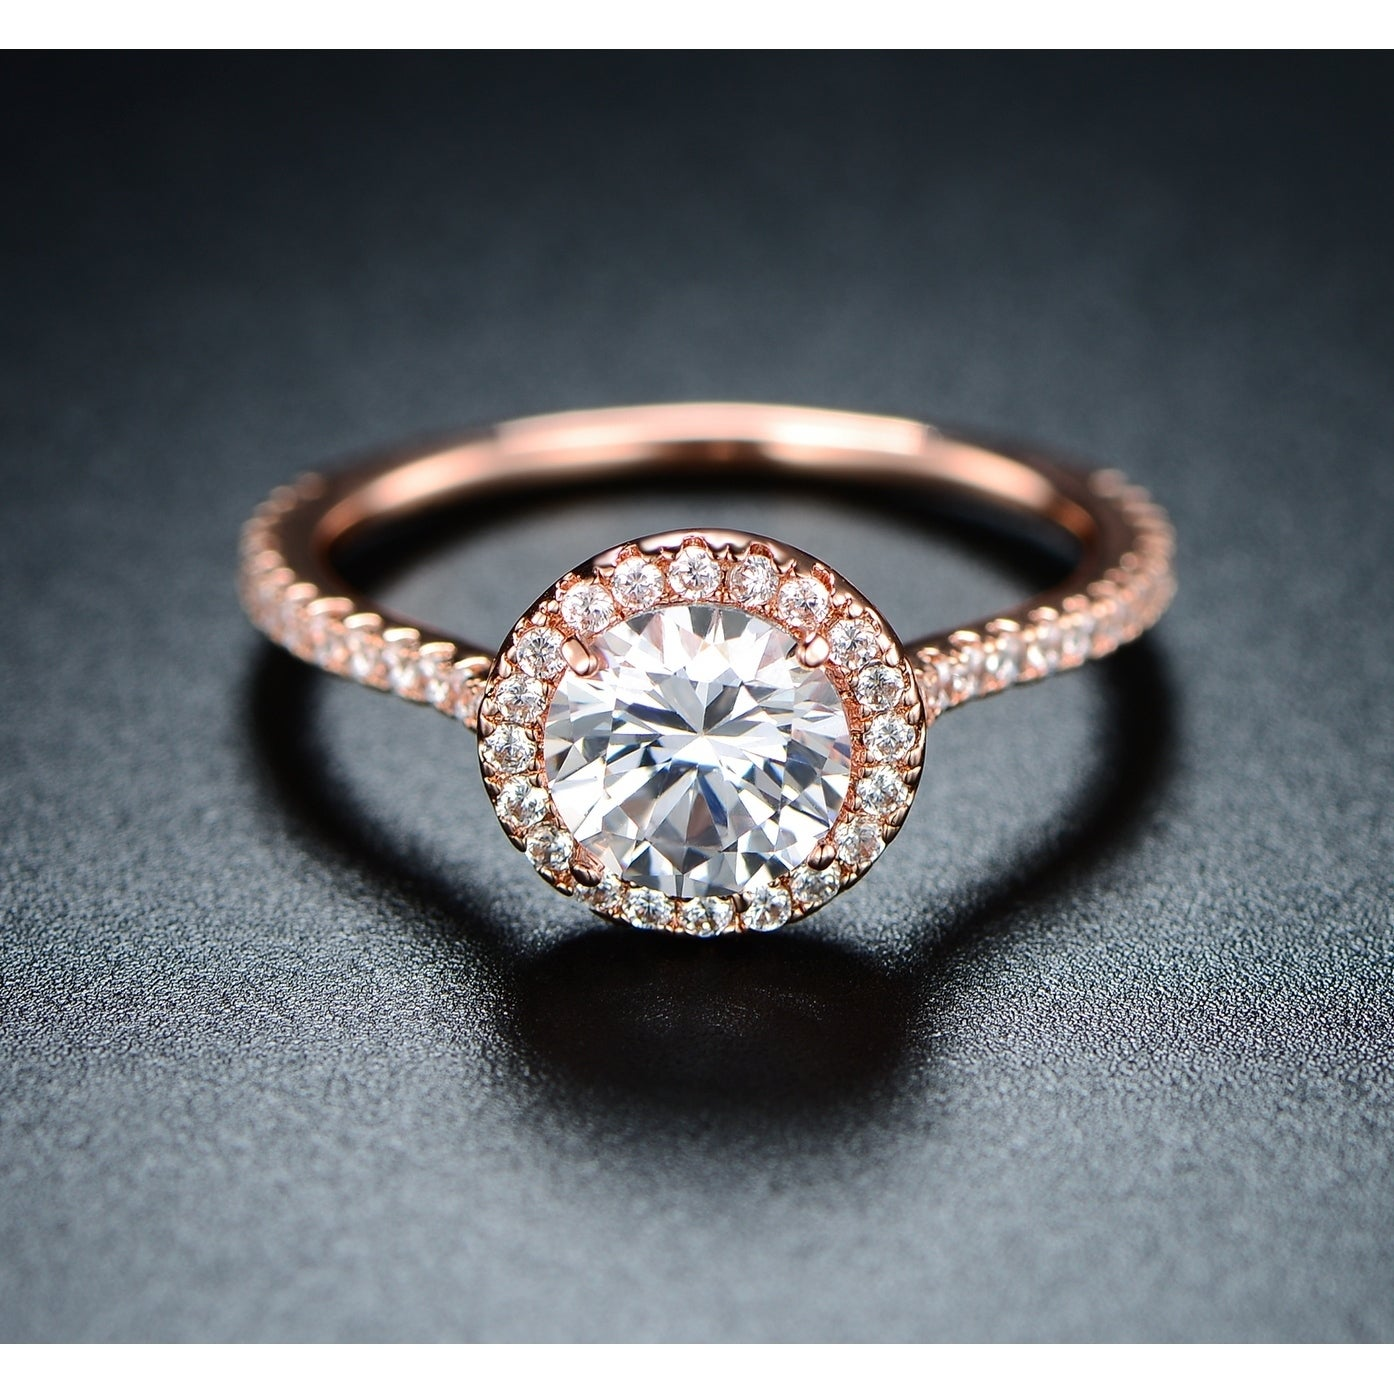 diamond antique solitaire engagement carat rings yellow fleur a products and victorian motif center de french lis with ring cut rose gold in design